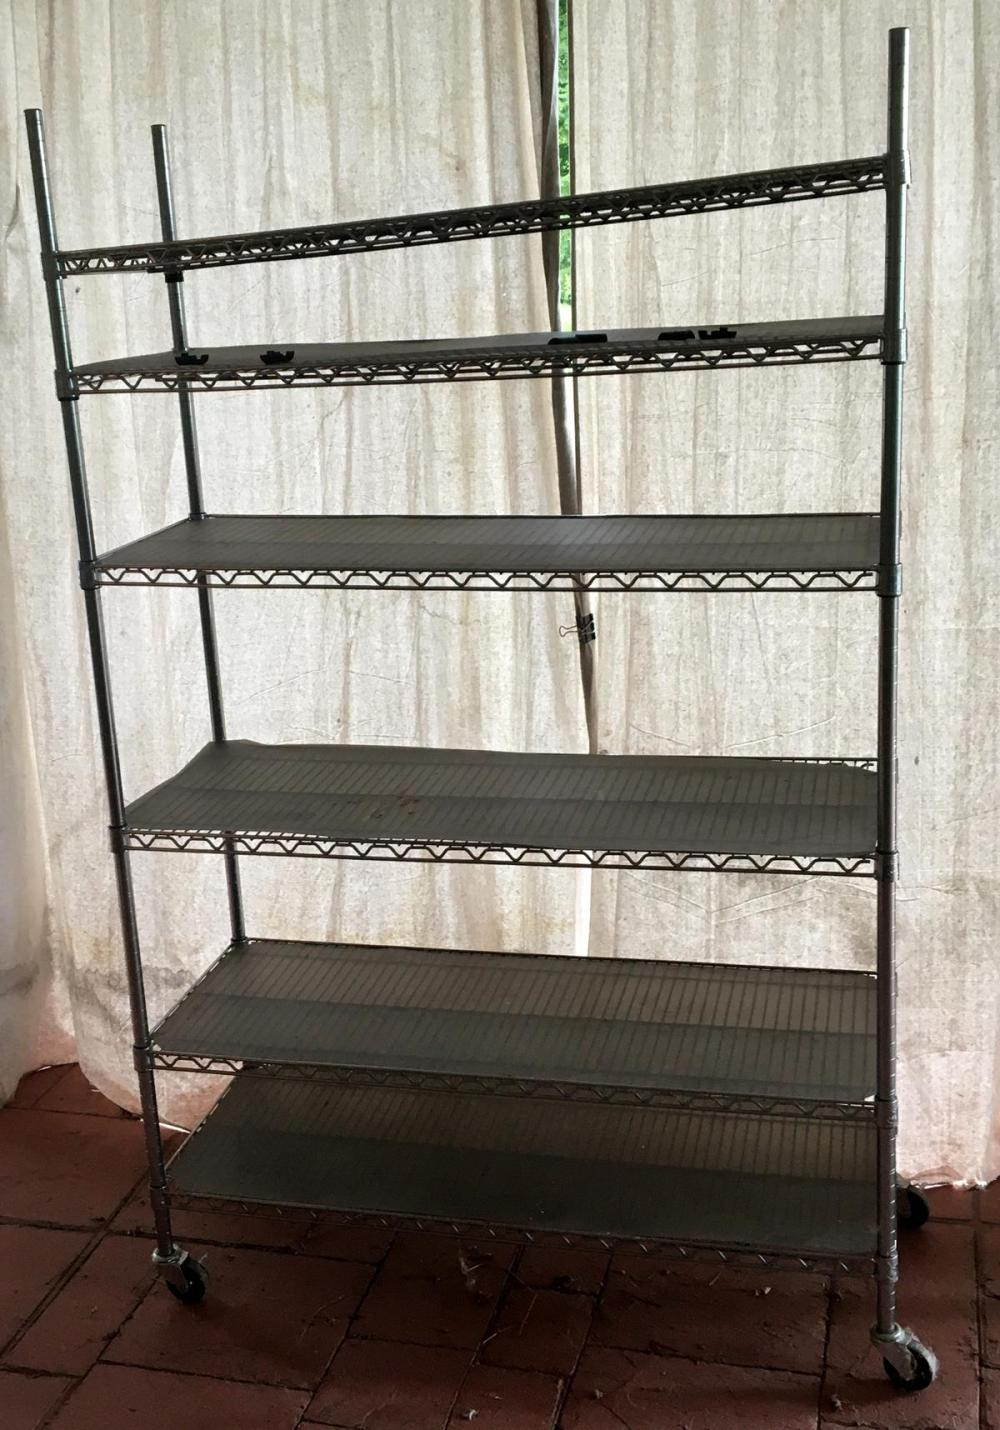 Adjustable Metal Shelving Rack on Wheels